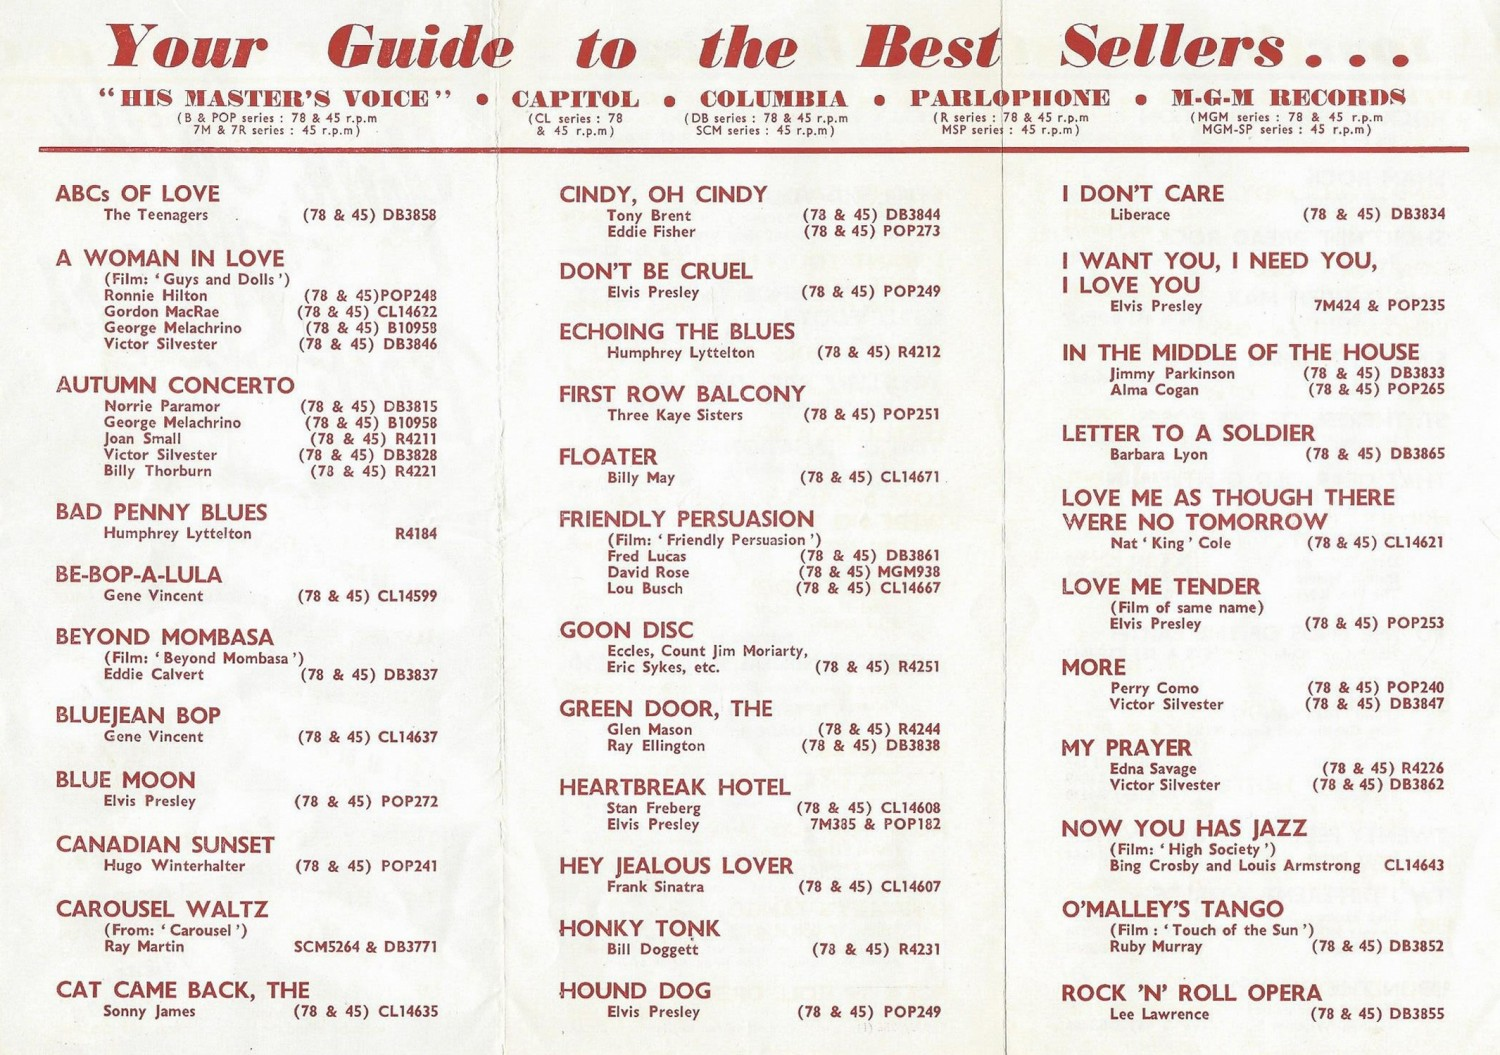 HMV Your Guide To Best Sellers 1956-12 (Alan White) 02